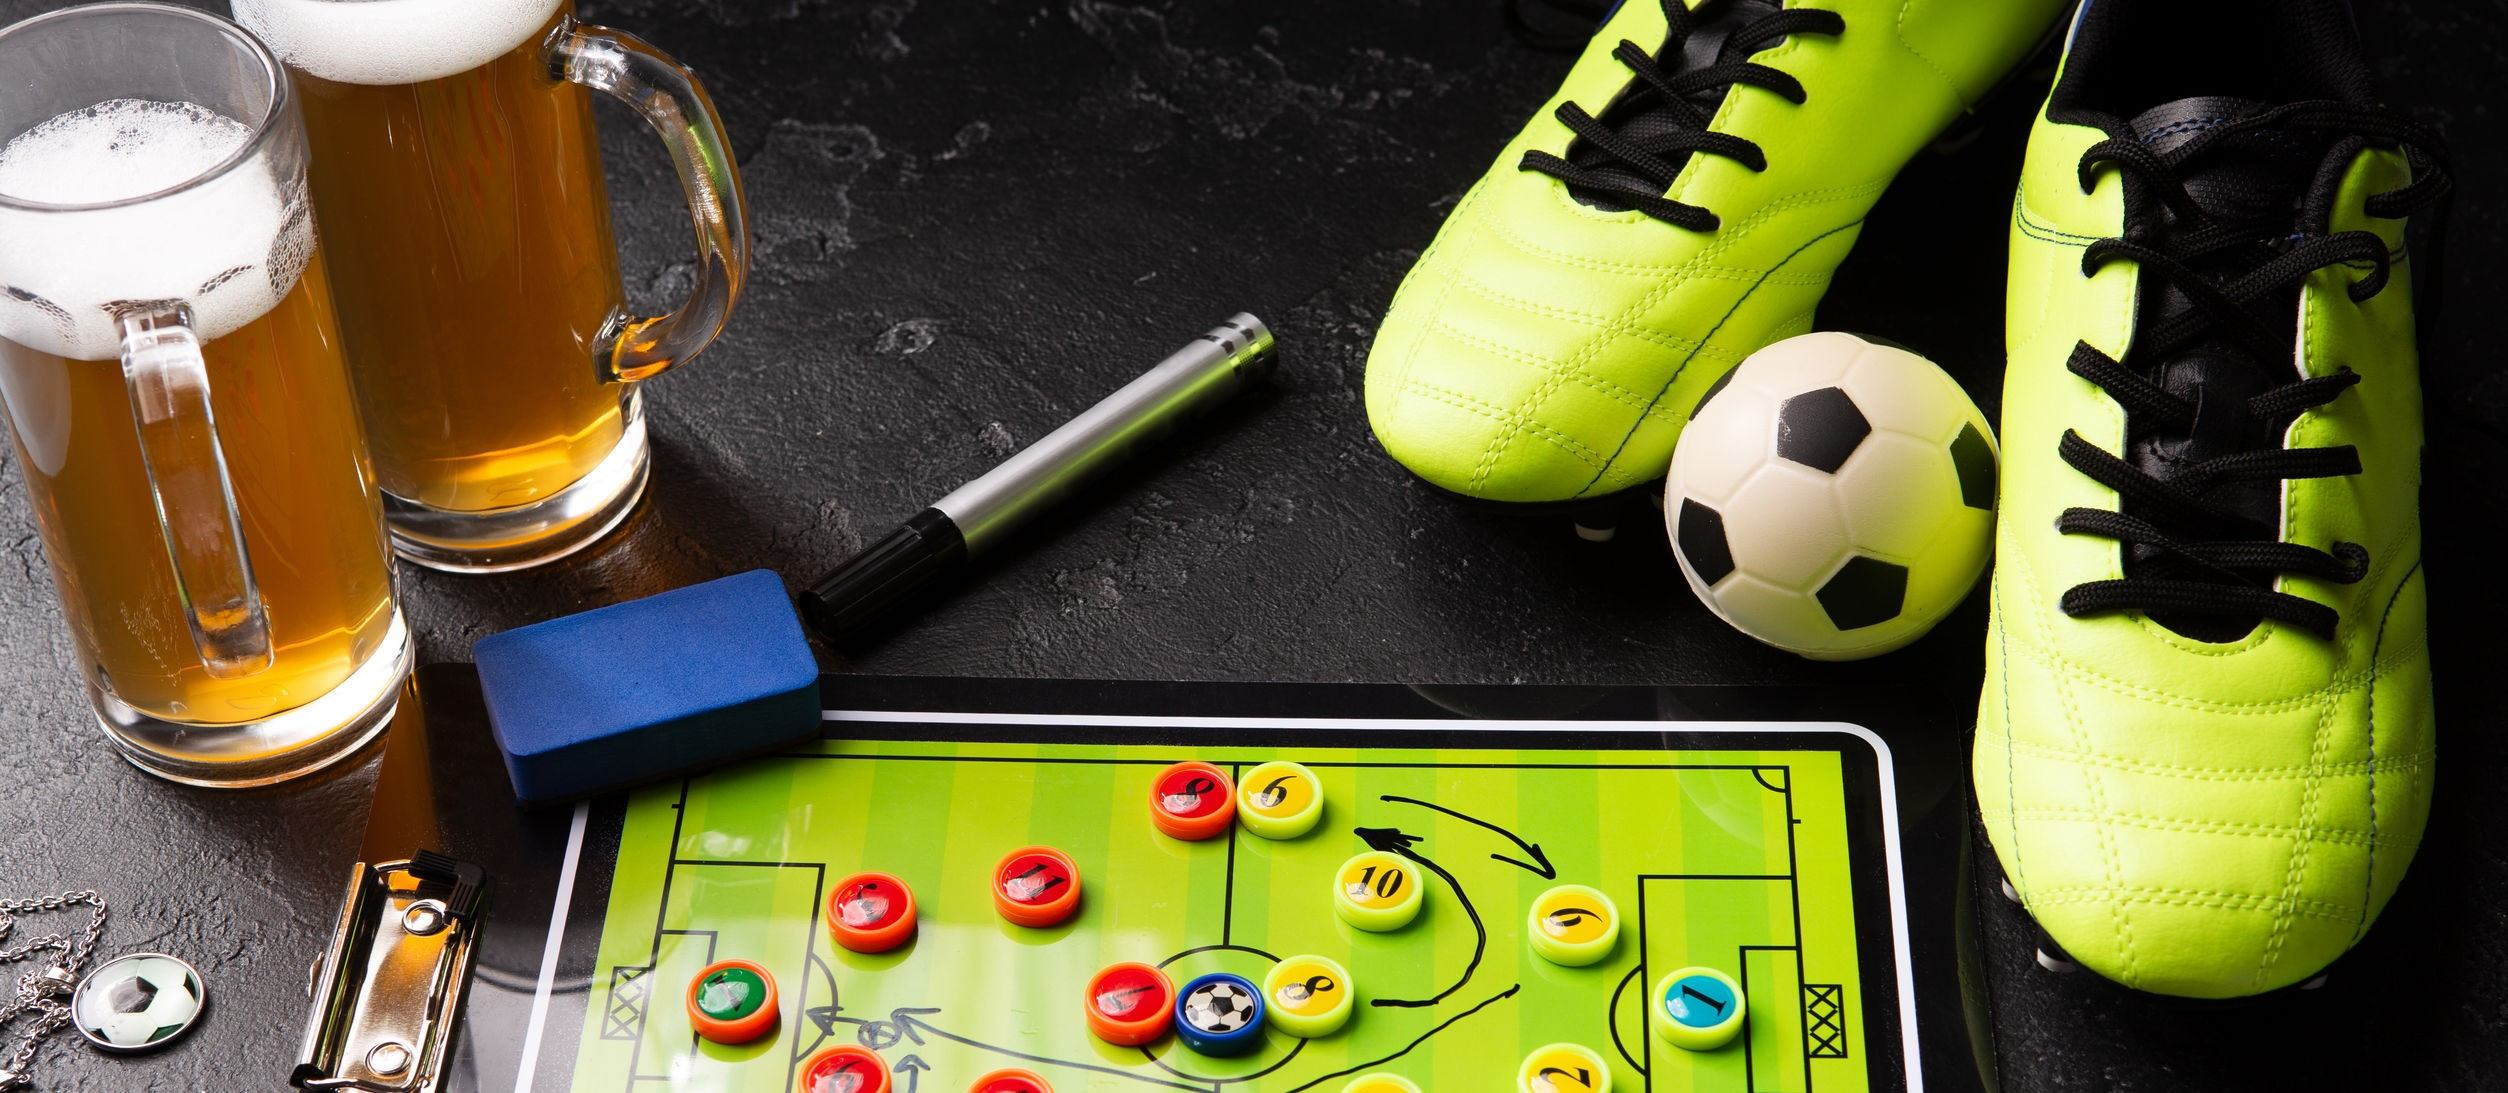 Photo of two mugs of foam beer, table football, ball, football boots, pipe, rattle toy on black table